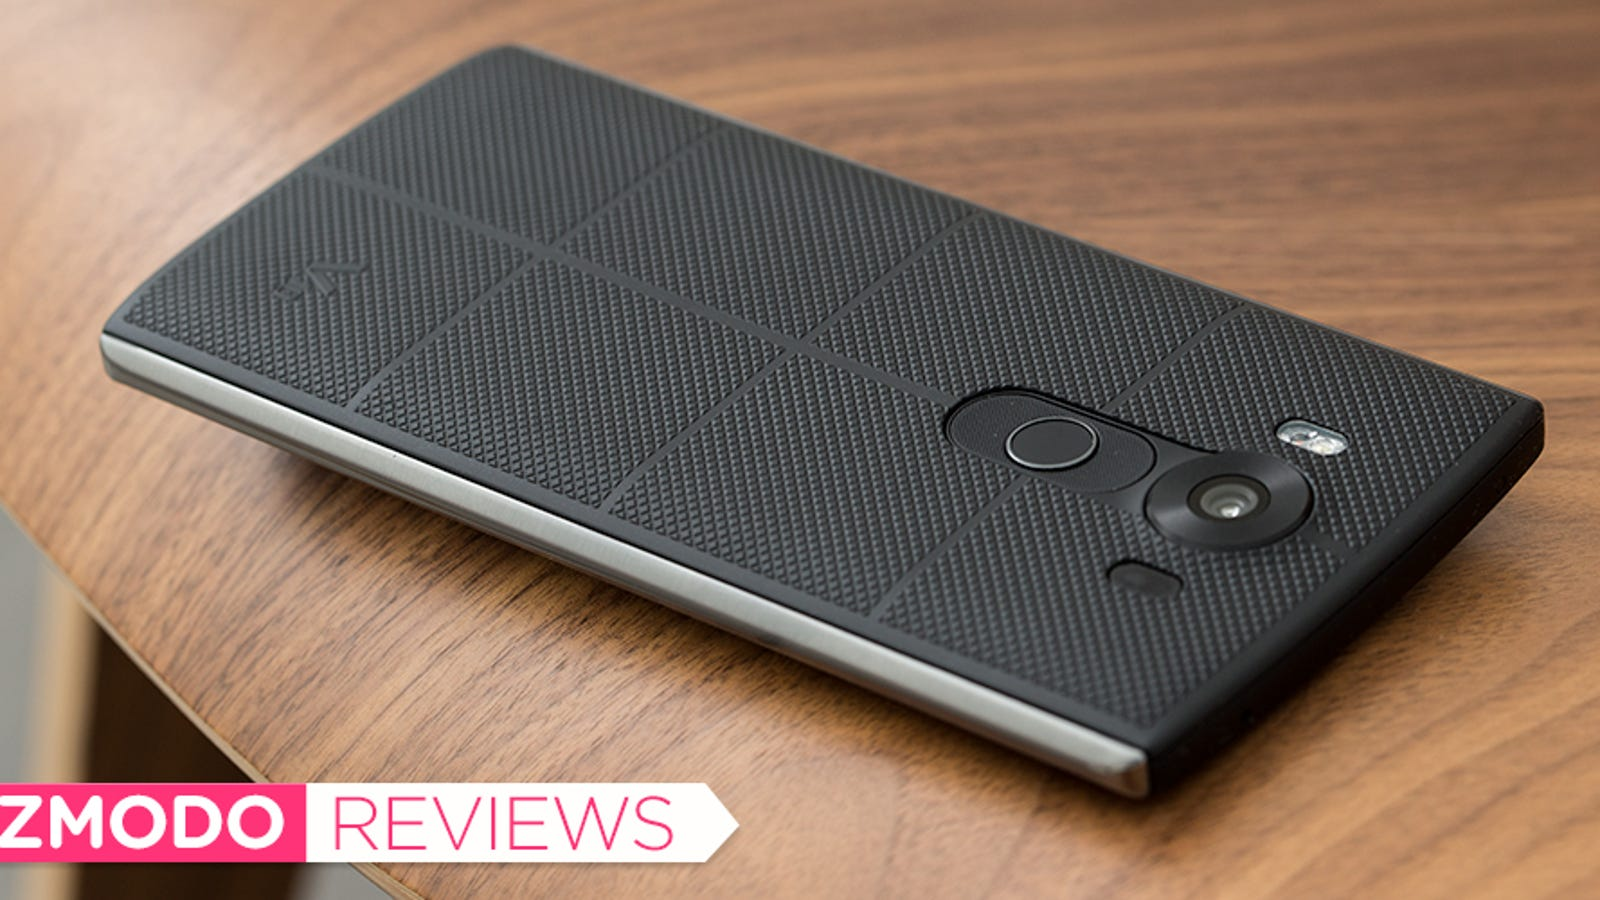 LG V10 Review: Big, Weird, and Not Worth It